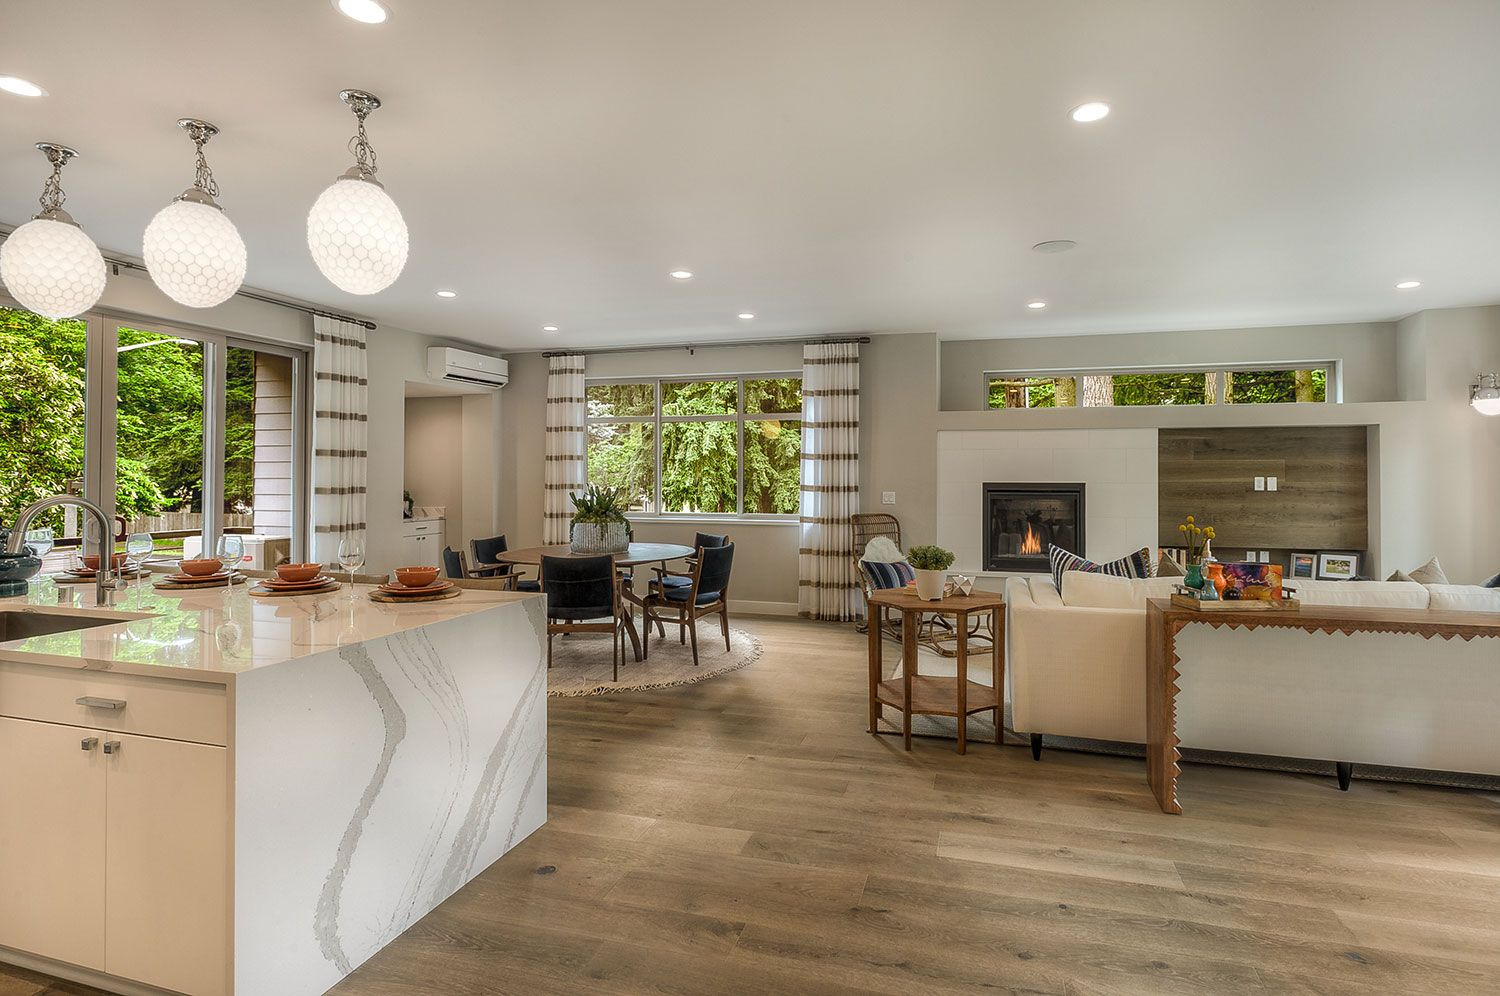 quadrant homes Smart home technology is today's must-have feature that buyers are demanding, and builders across the country are responding with product that incorporates automated devices into the home as a.